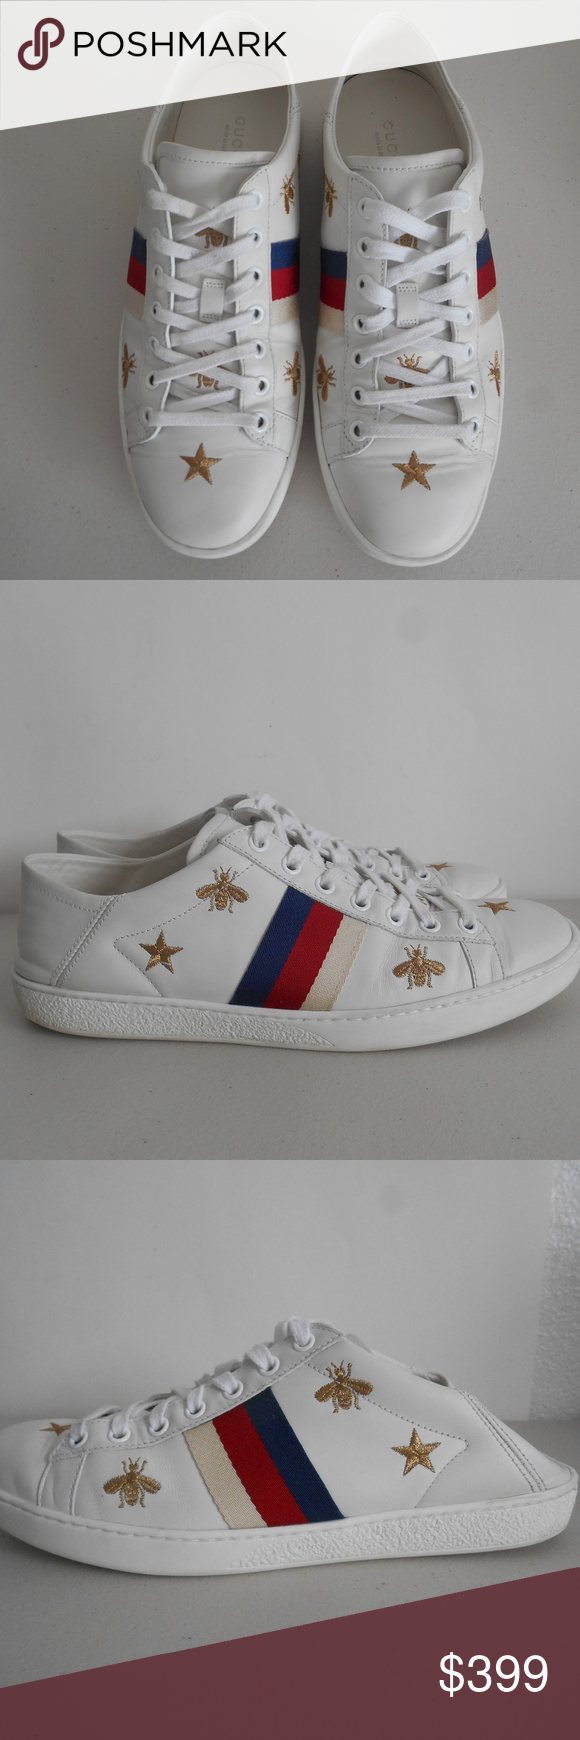 f3bc1d3394a GUCCI  Ace  Convertible Sneakers w  Bees and Stars Absolutely authentic.  Golden bee